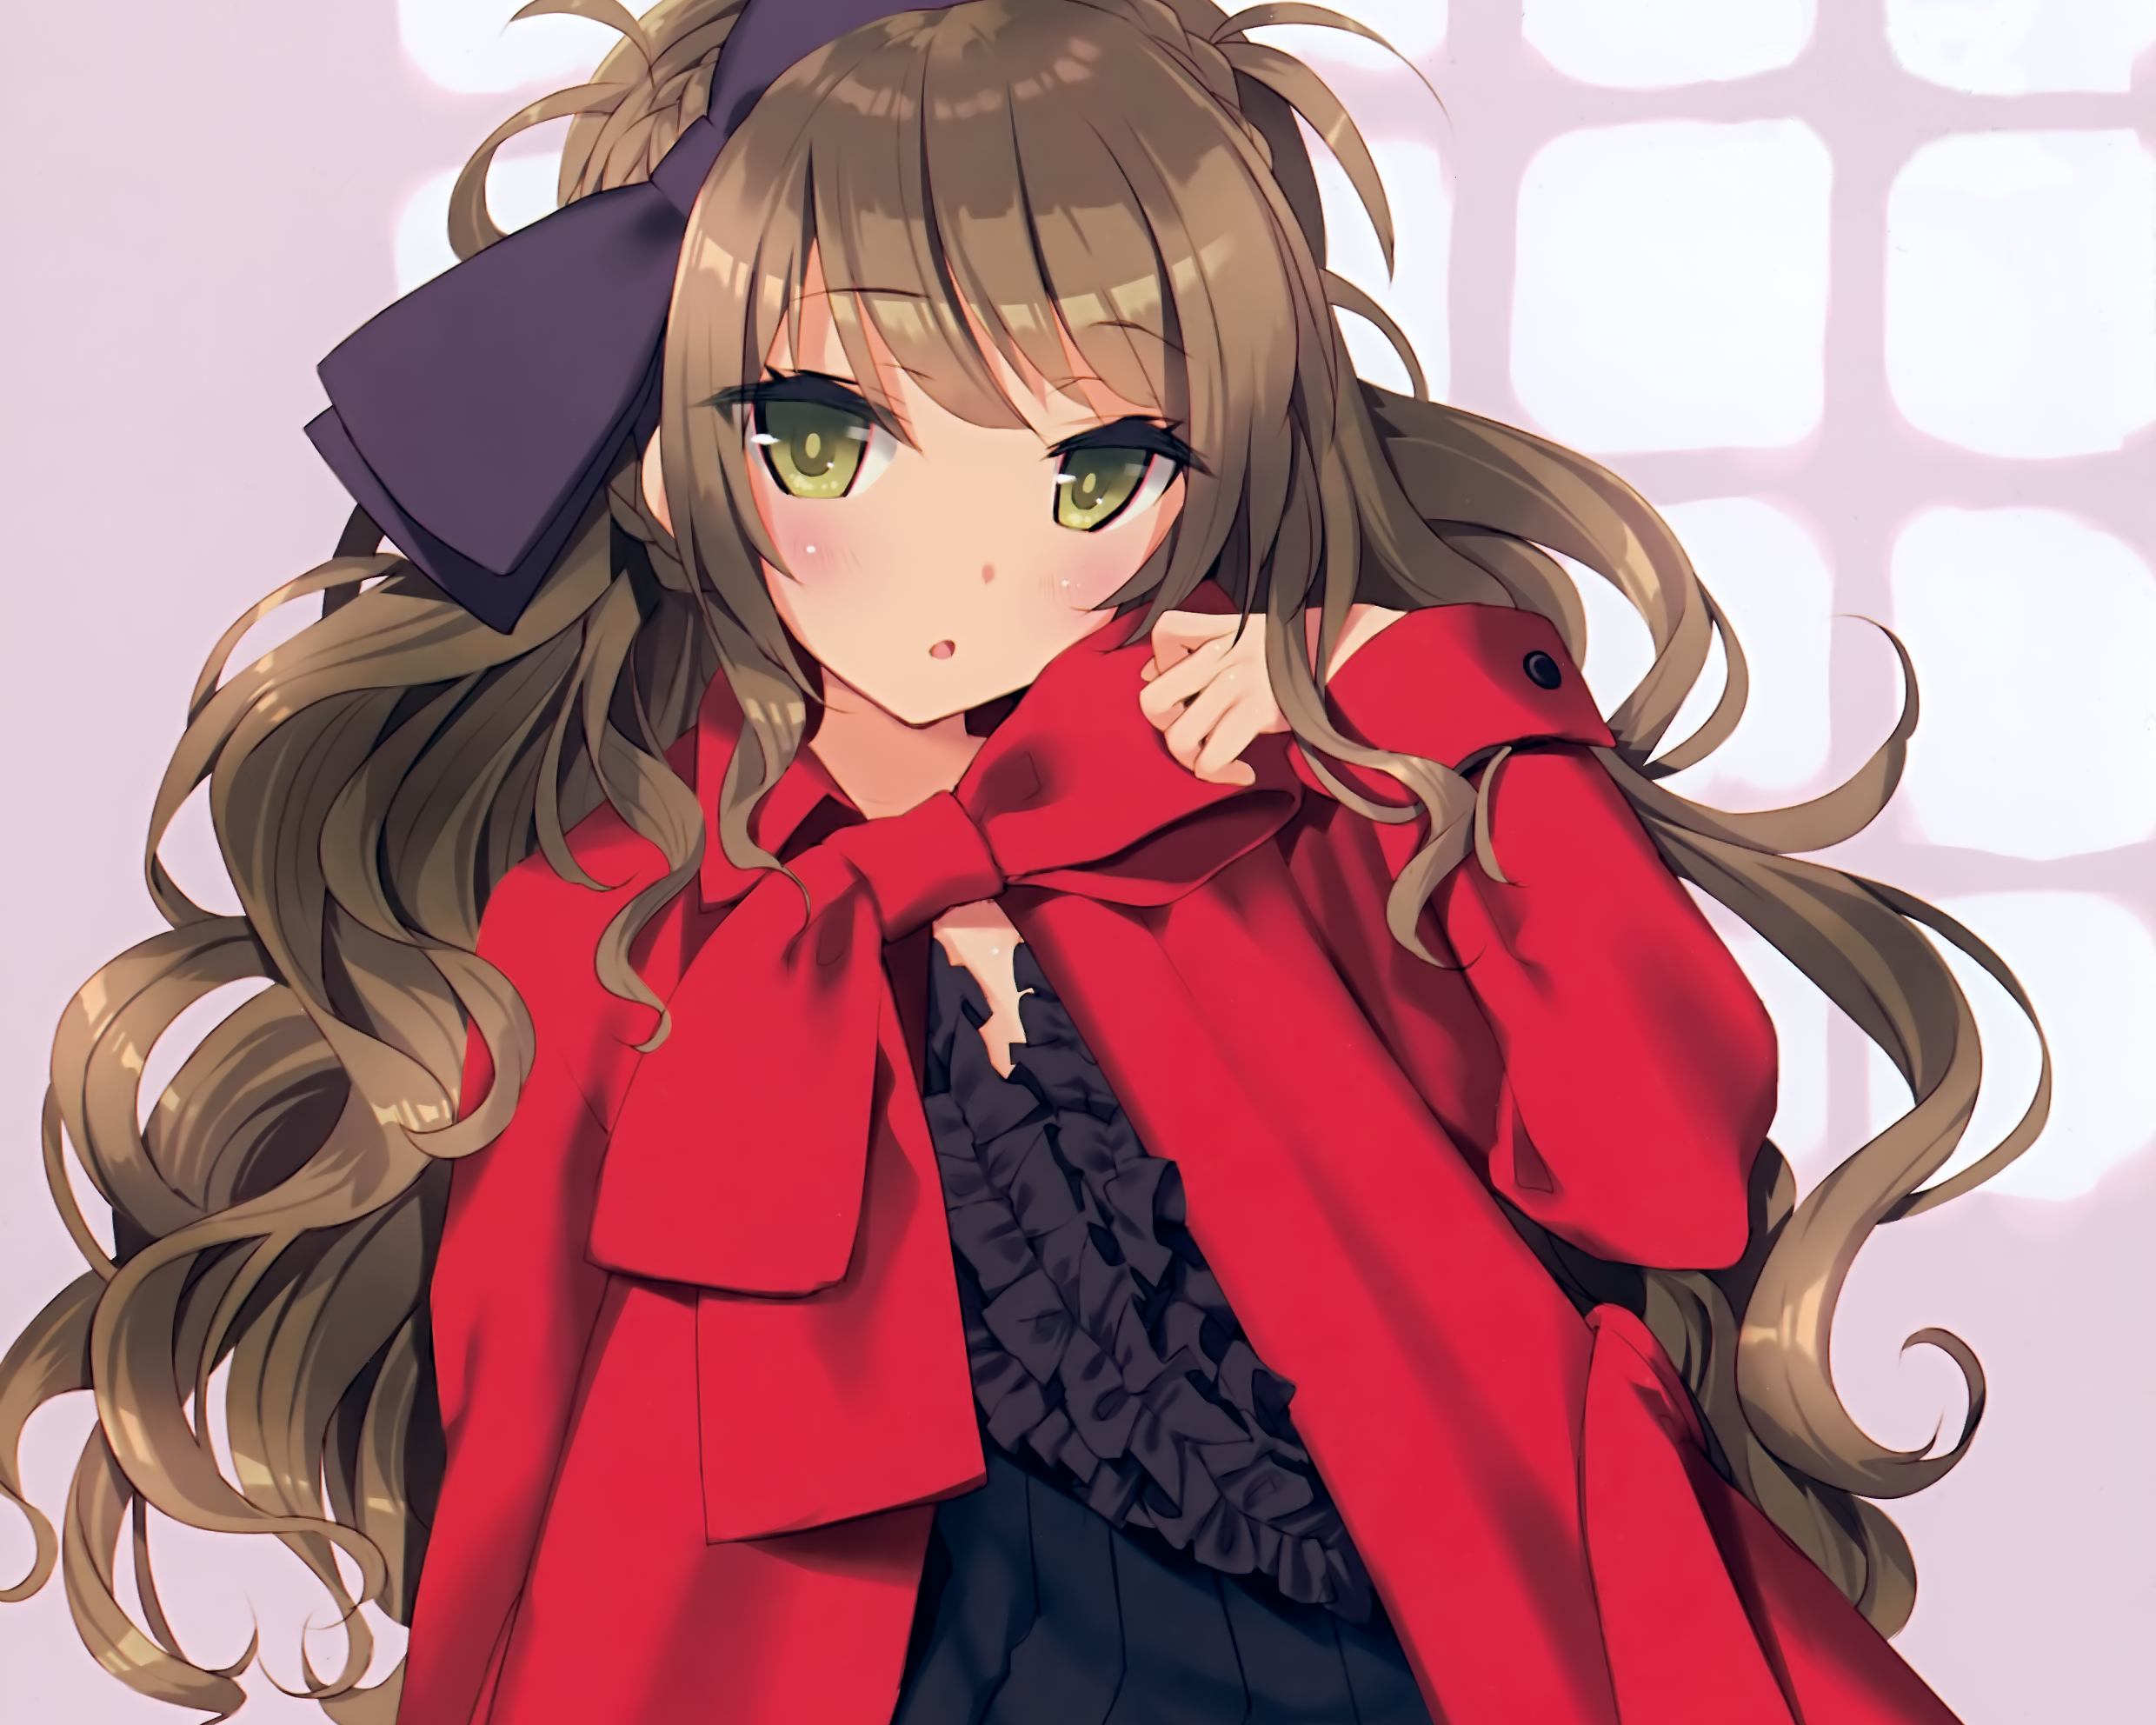 Anime girl with light brown hair and green eyes